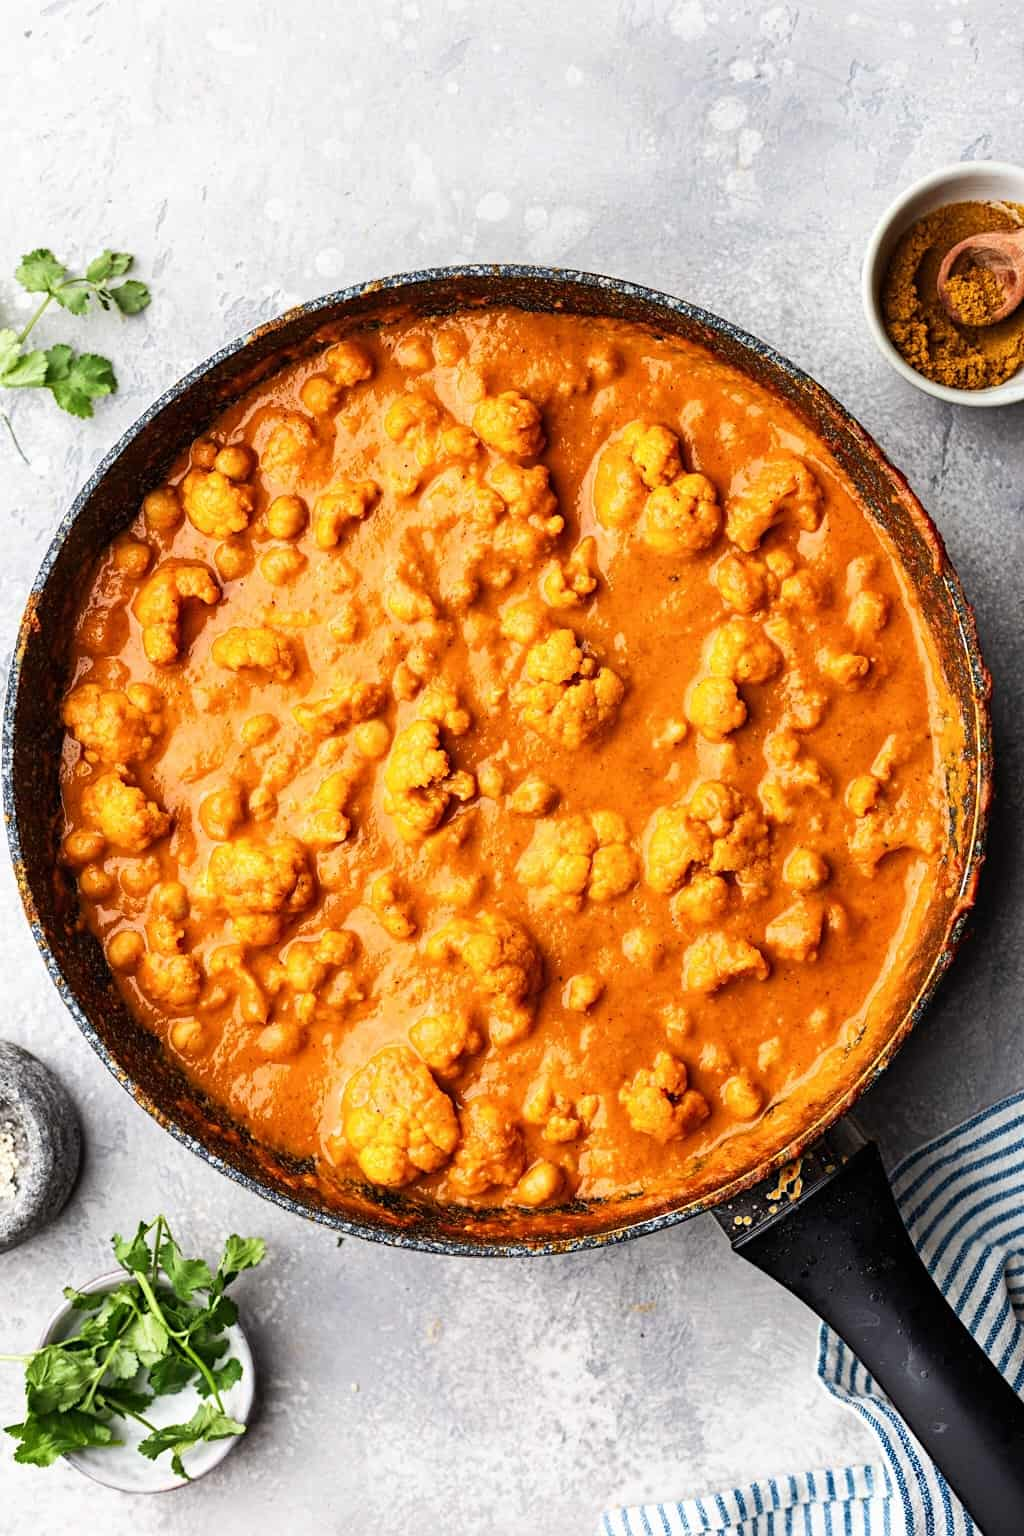 Chickpea and Cauliflower Curry #curry #vegan #chickpea #cauliflower #healthy #creamy